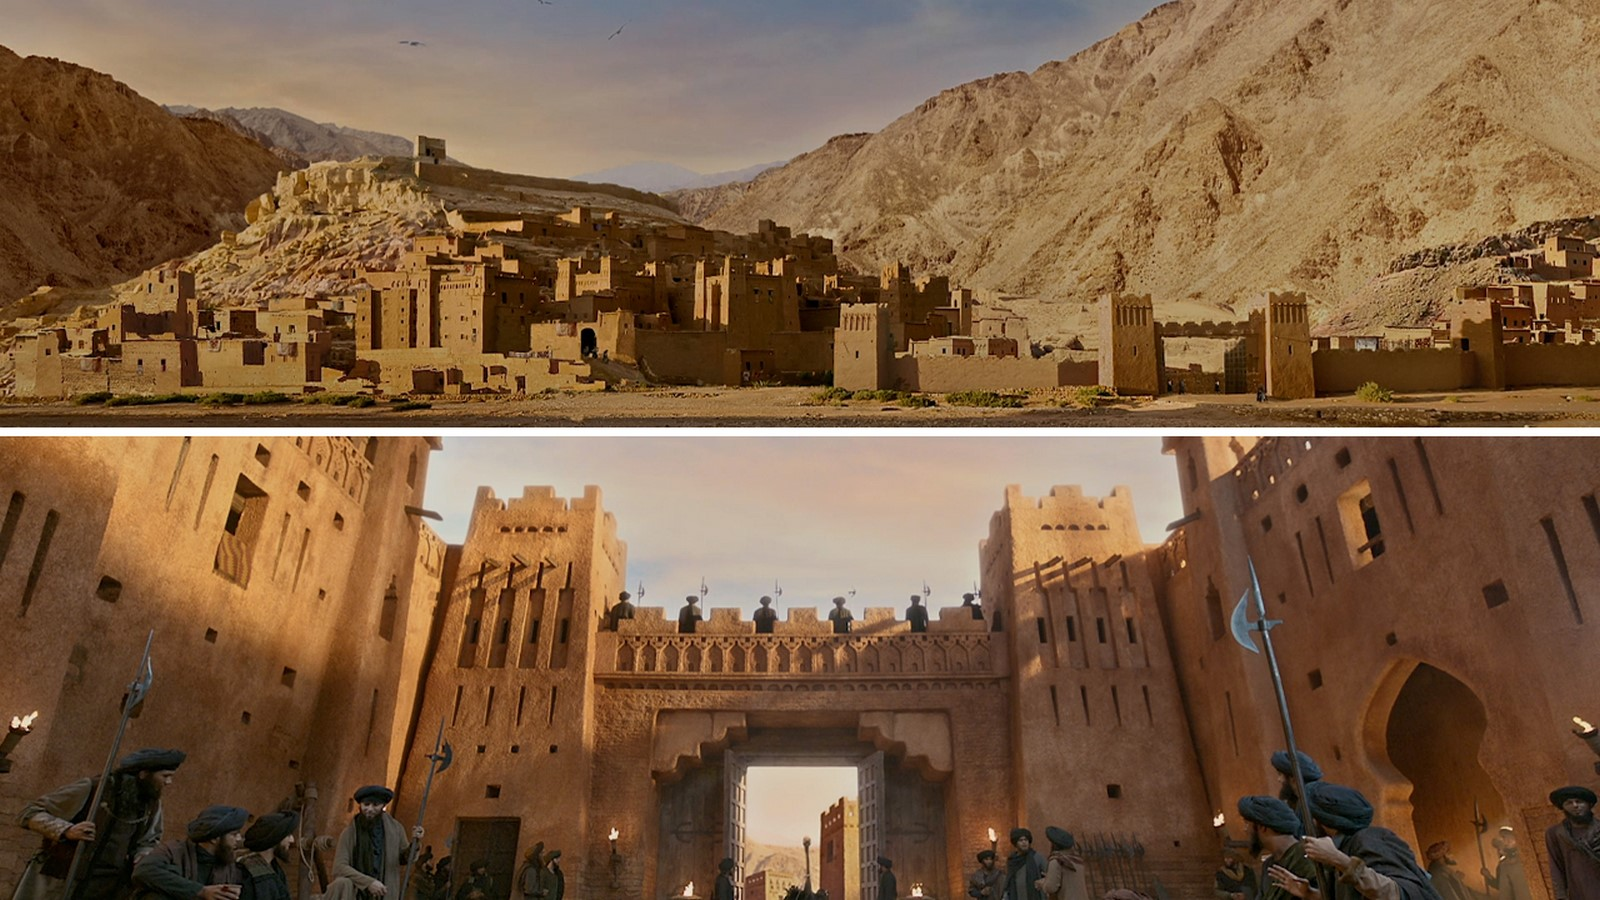 An architectural review of Padmavat - Sheet1